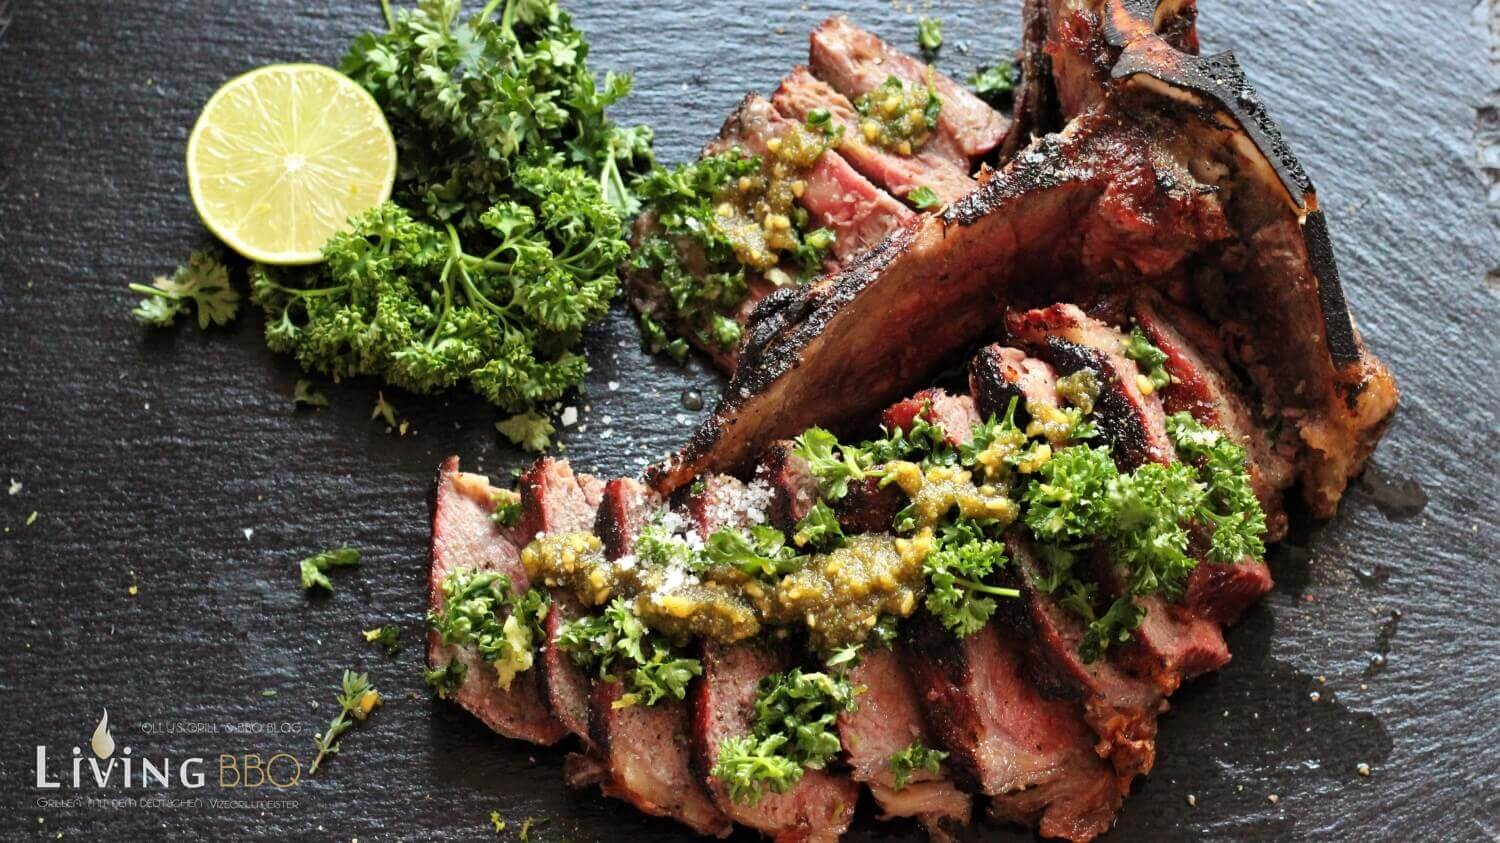 Dry Aged T-Bone Steak grillen Gremolata